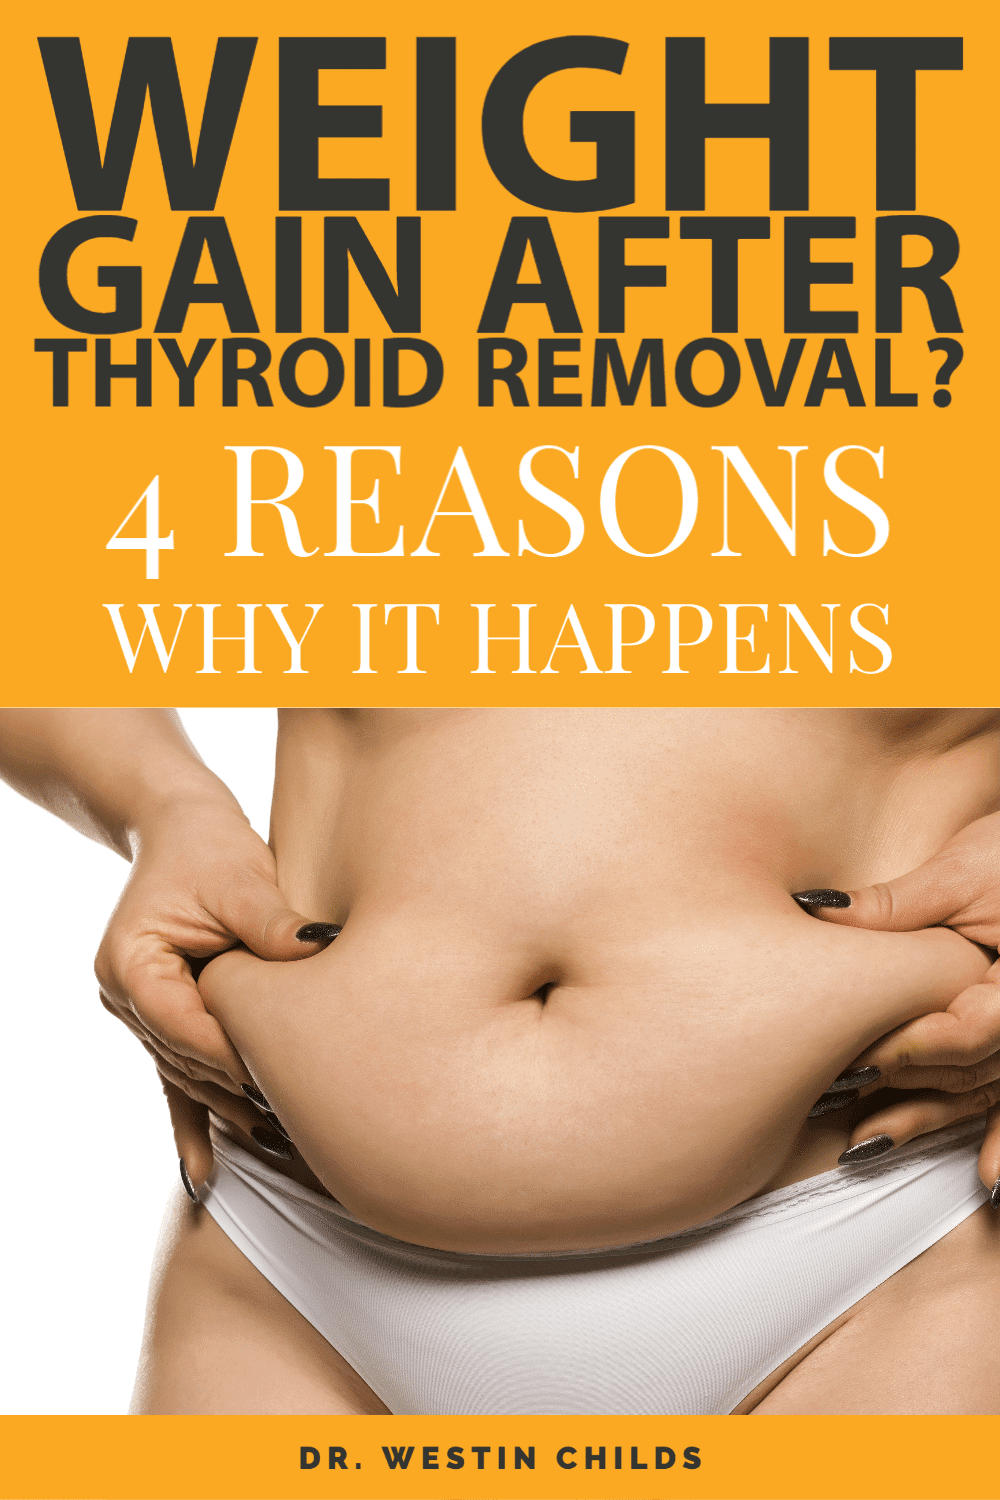 4 reasons why it's so hard to lose weight after thyroid removal